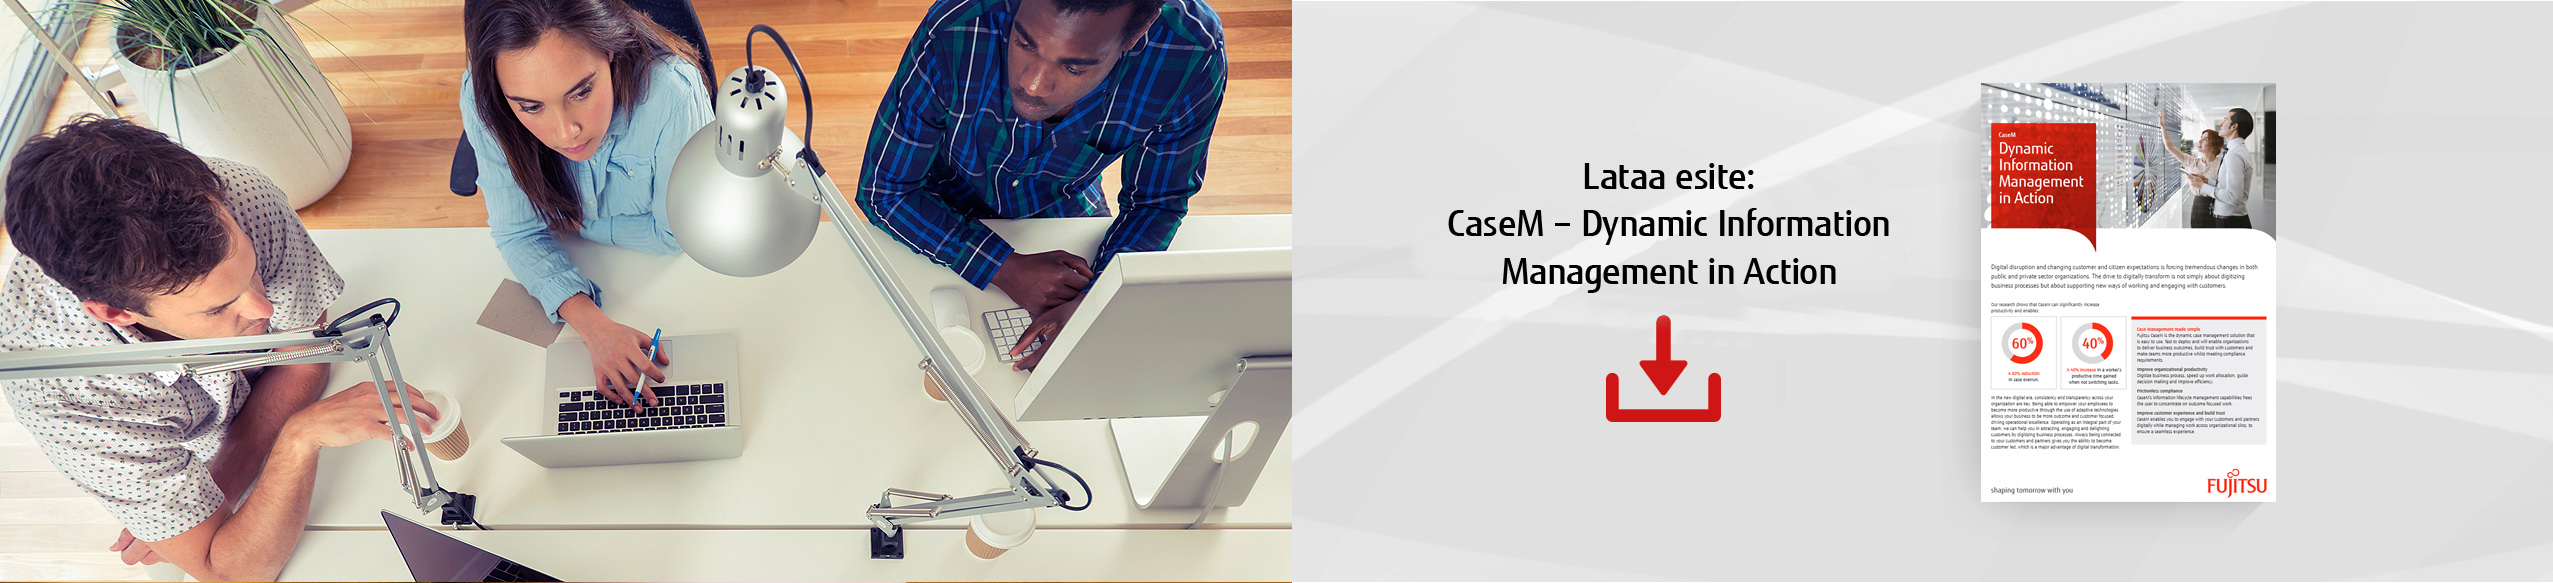 Lataa esite: CaseM - Dynamic information management in action